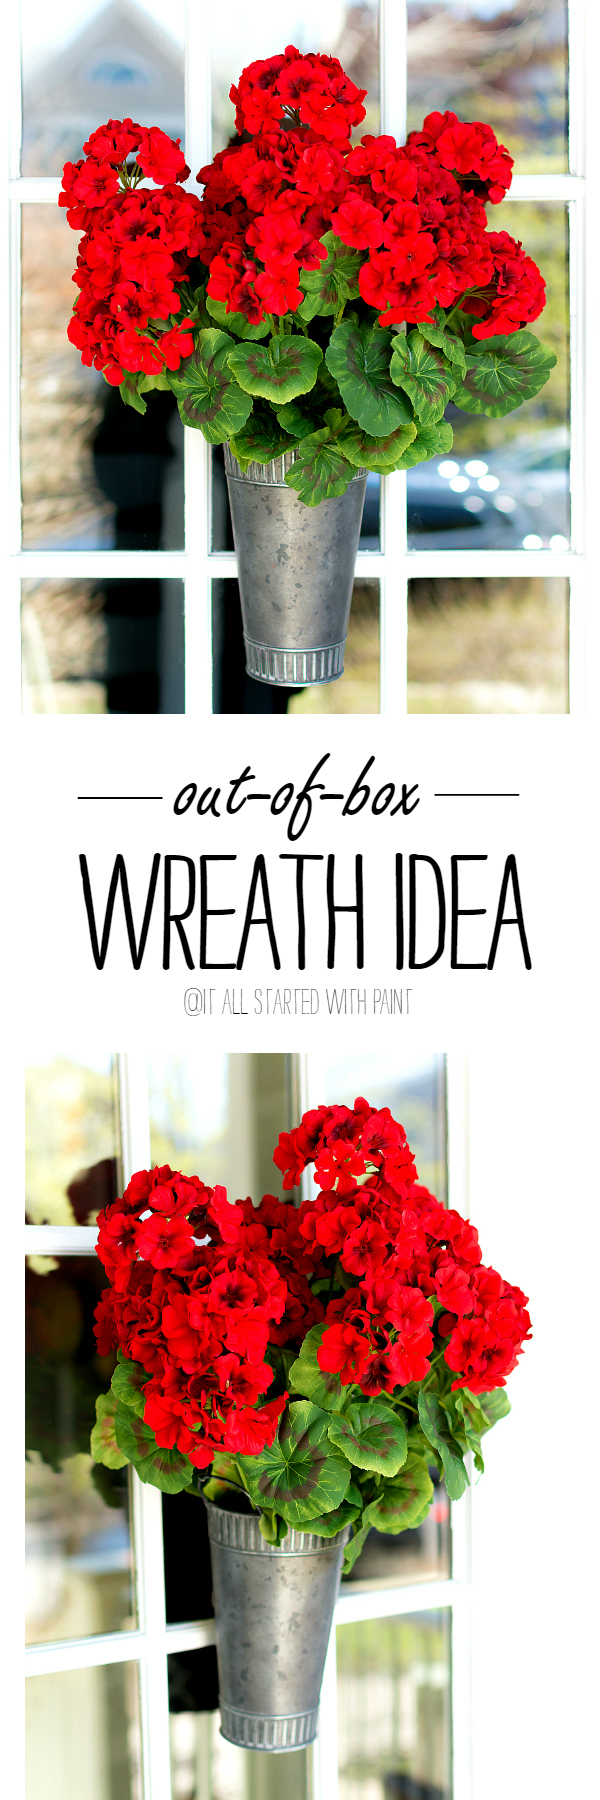 summer-wreath-ideas-red-flowers